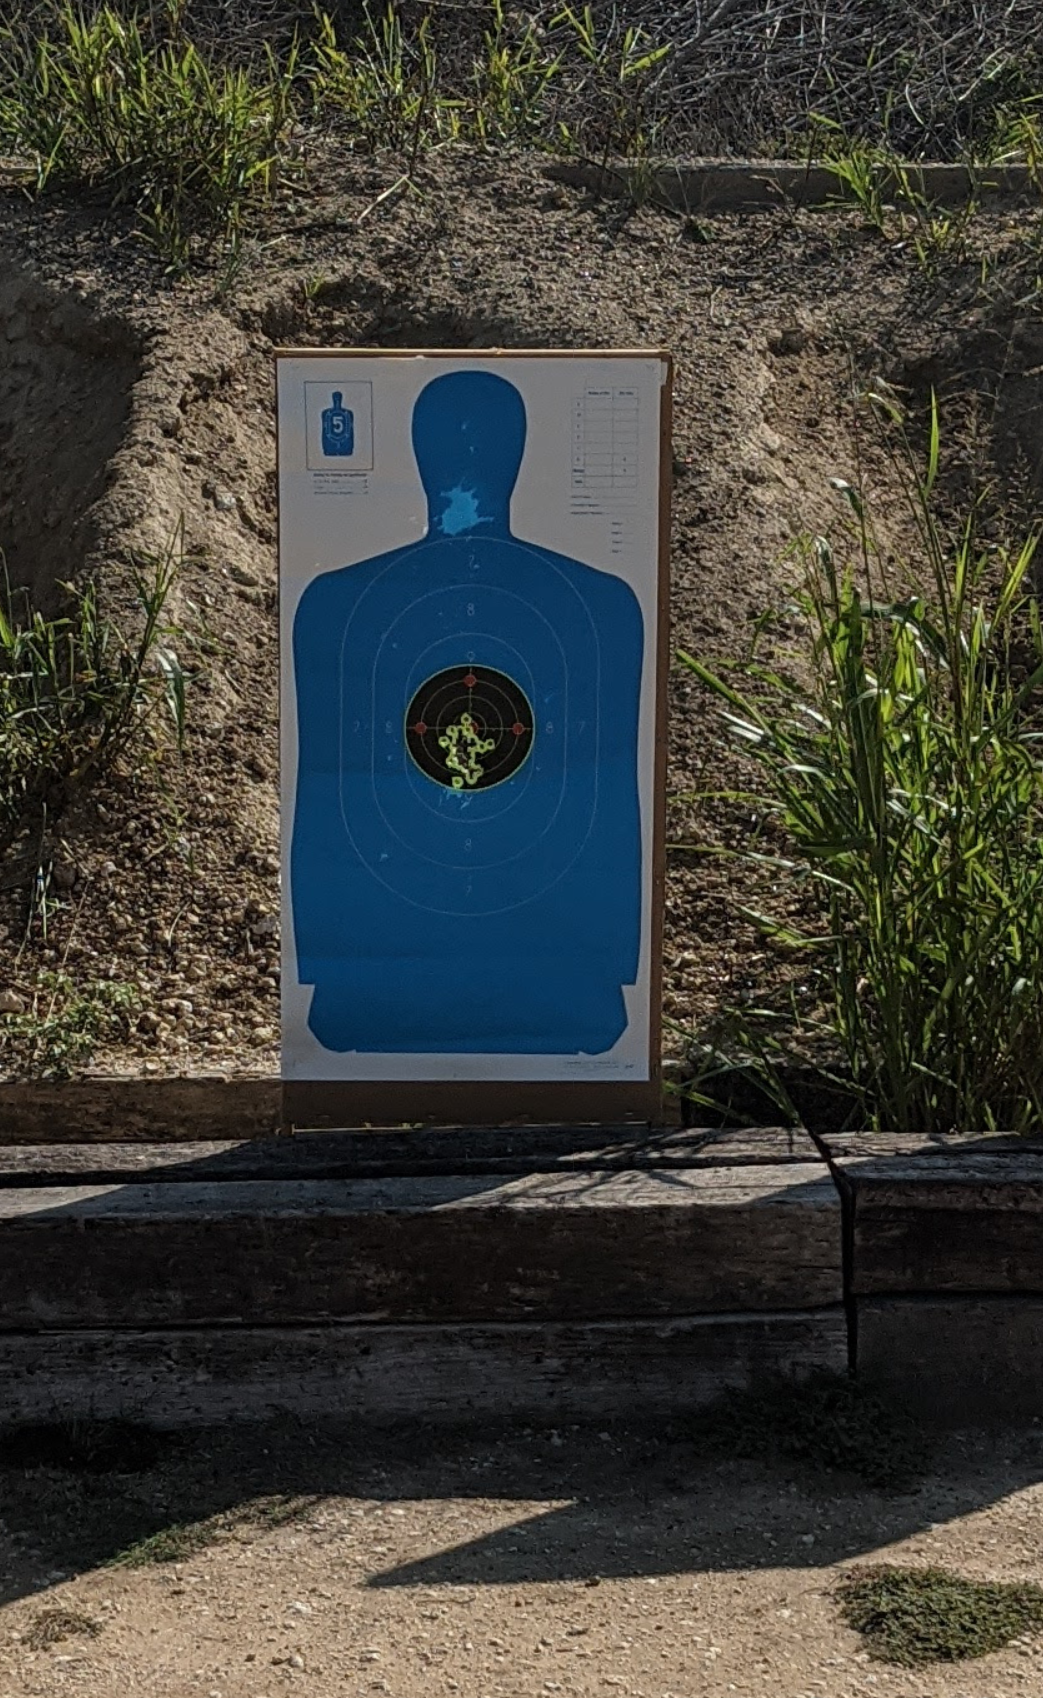 First Range Day with the USC-screenshot-2020-09-13-112034.png